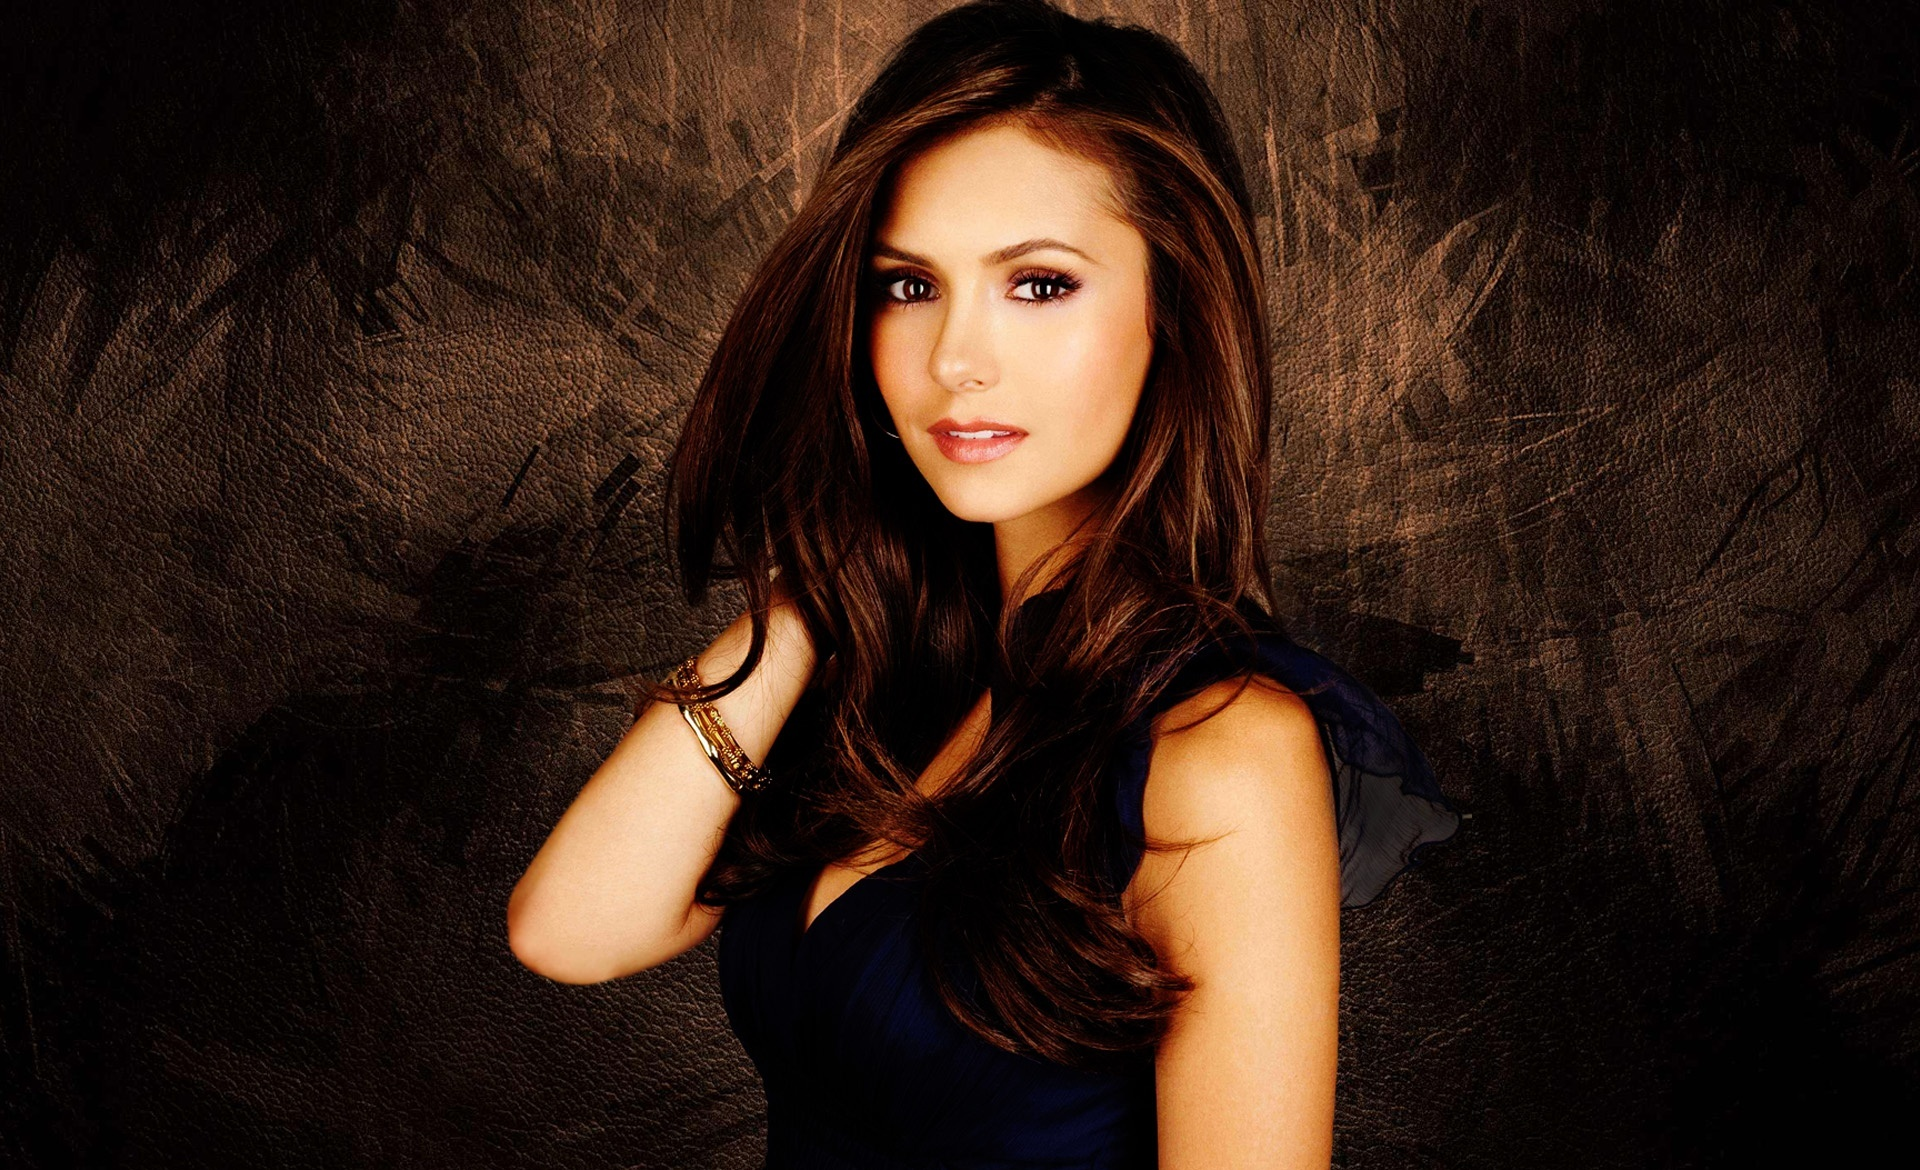 Nina dobrev wallpapers high resolution and quality download for Belle photo hd